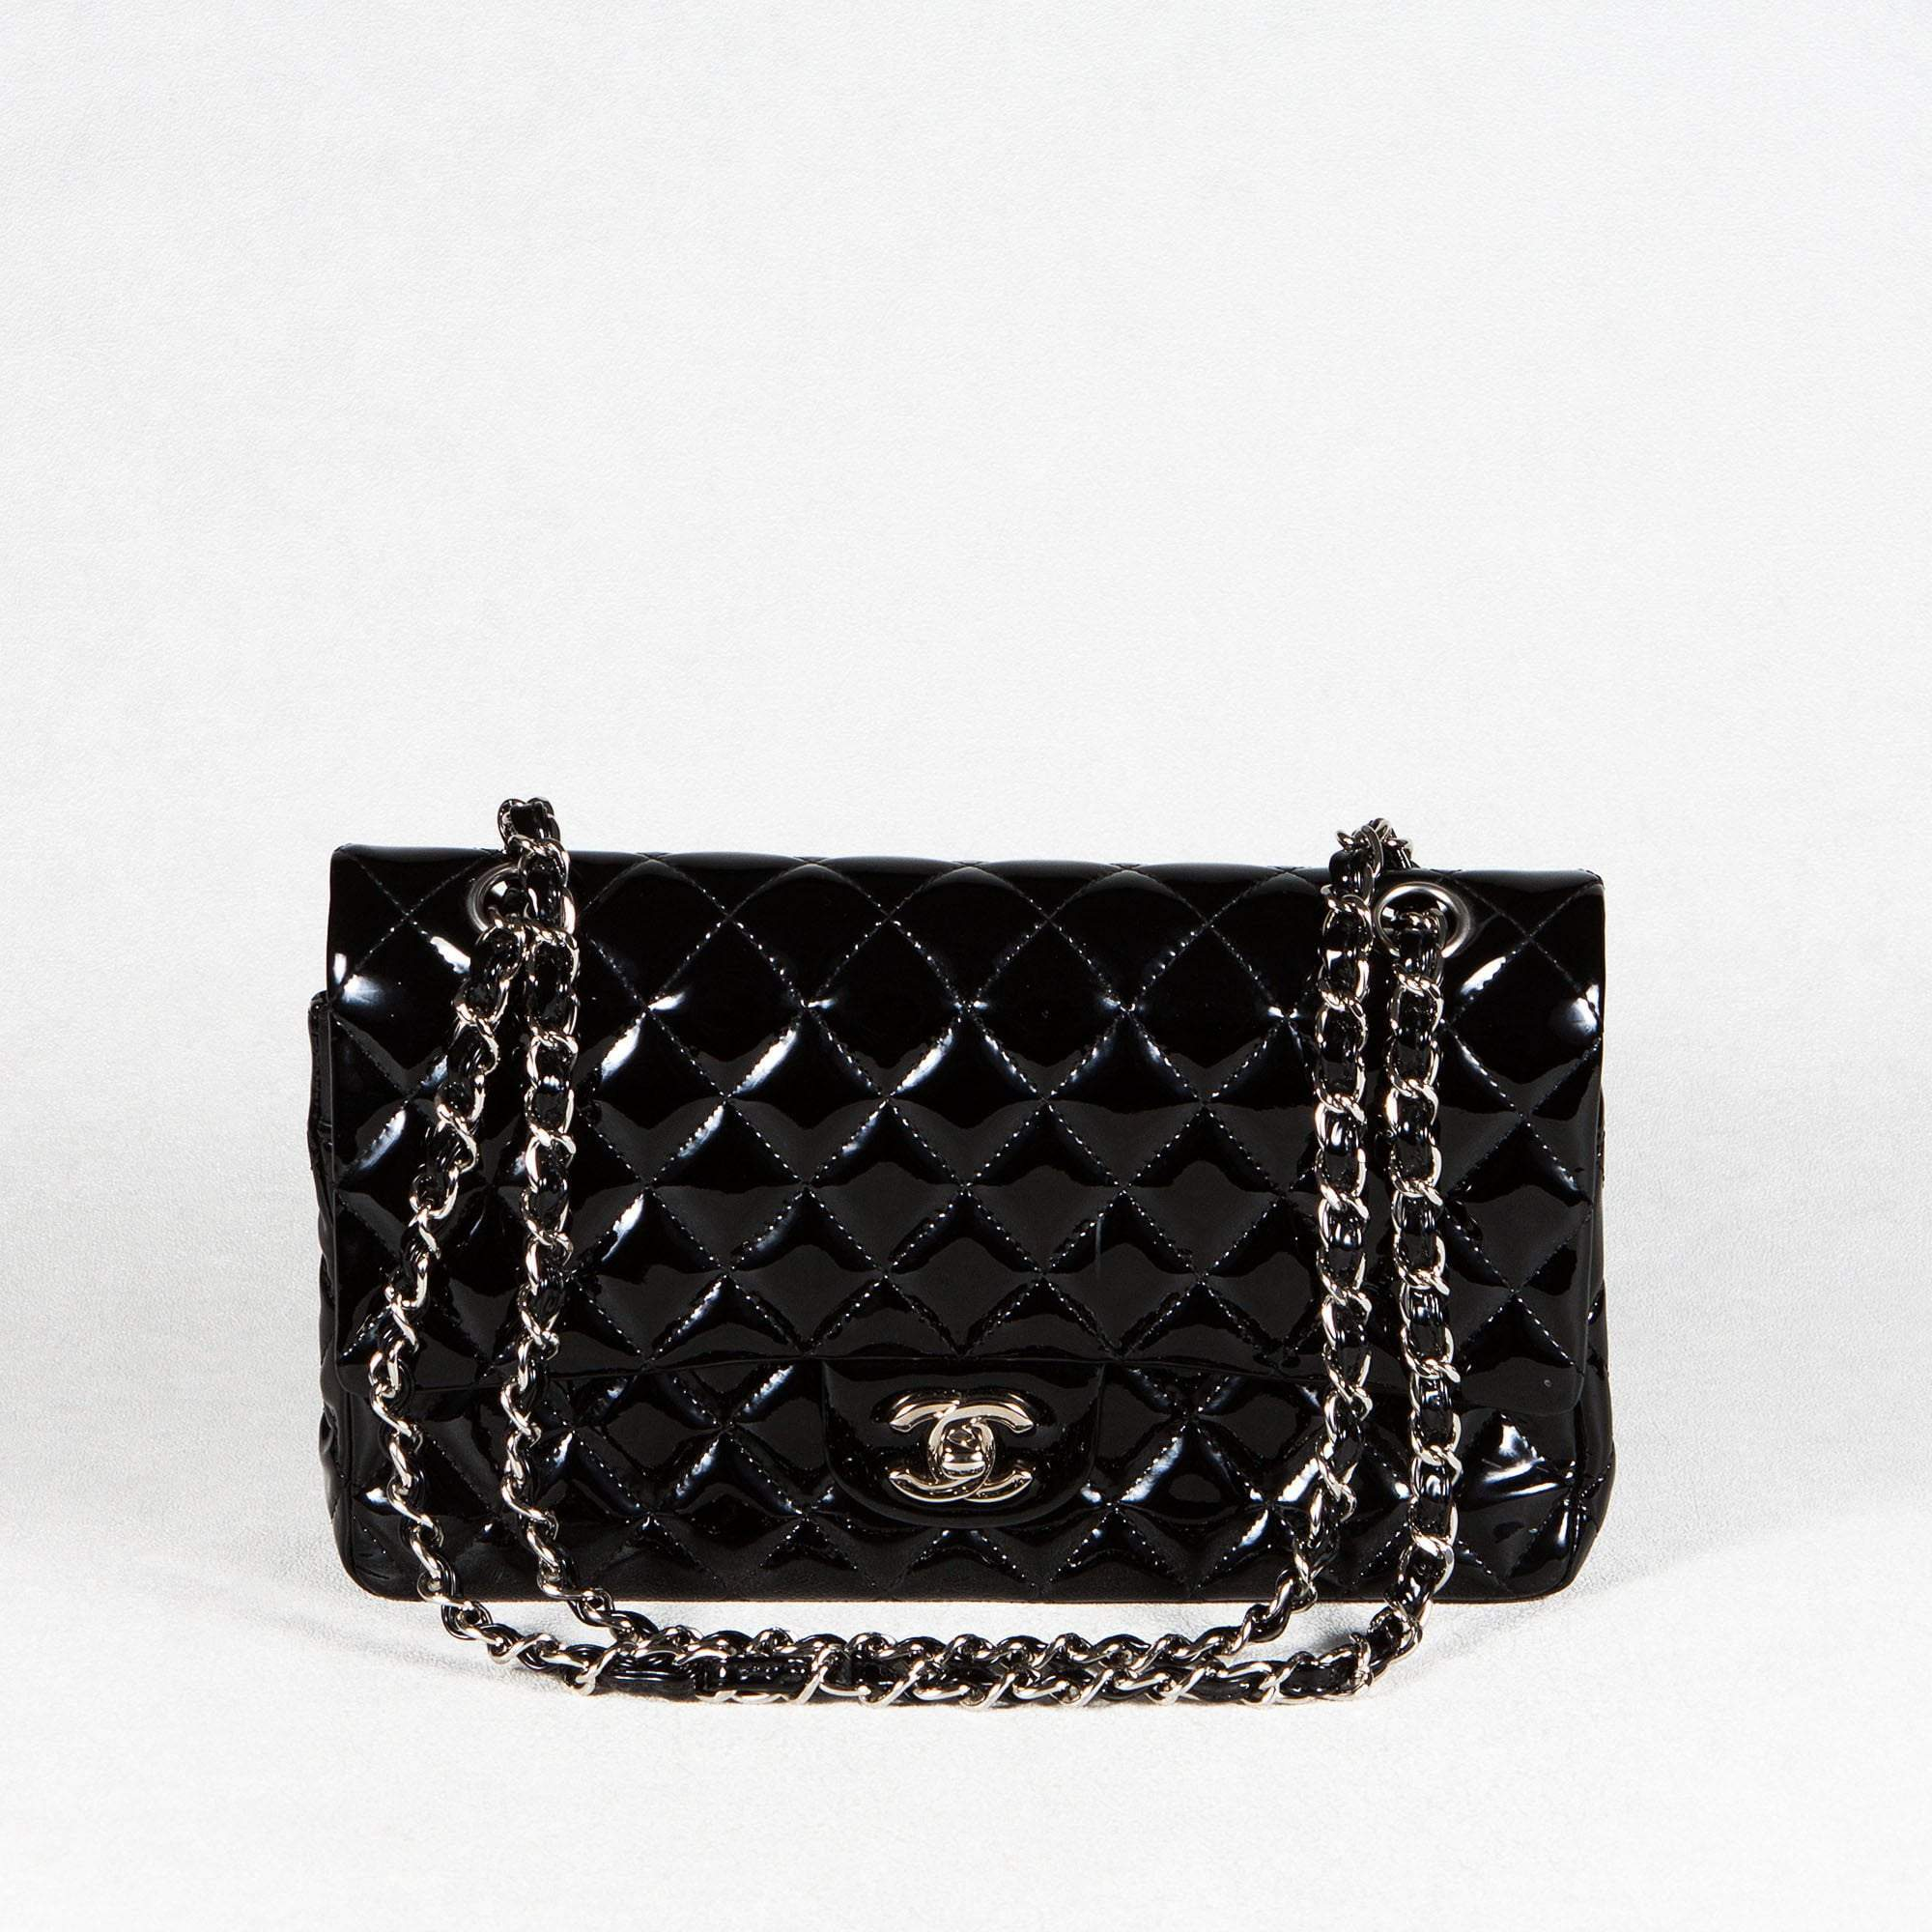 Chanel Patent Leather Medium Double Flap Bag